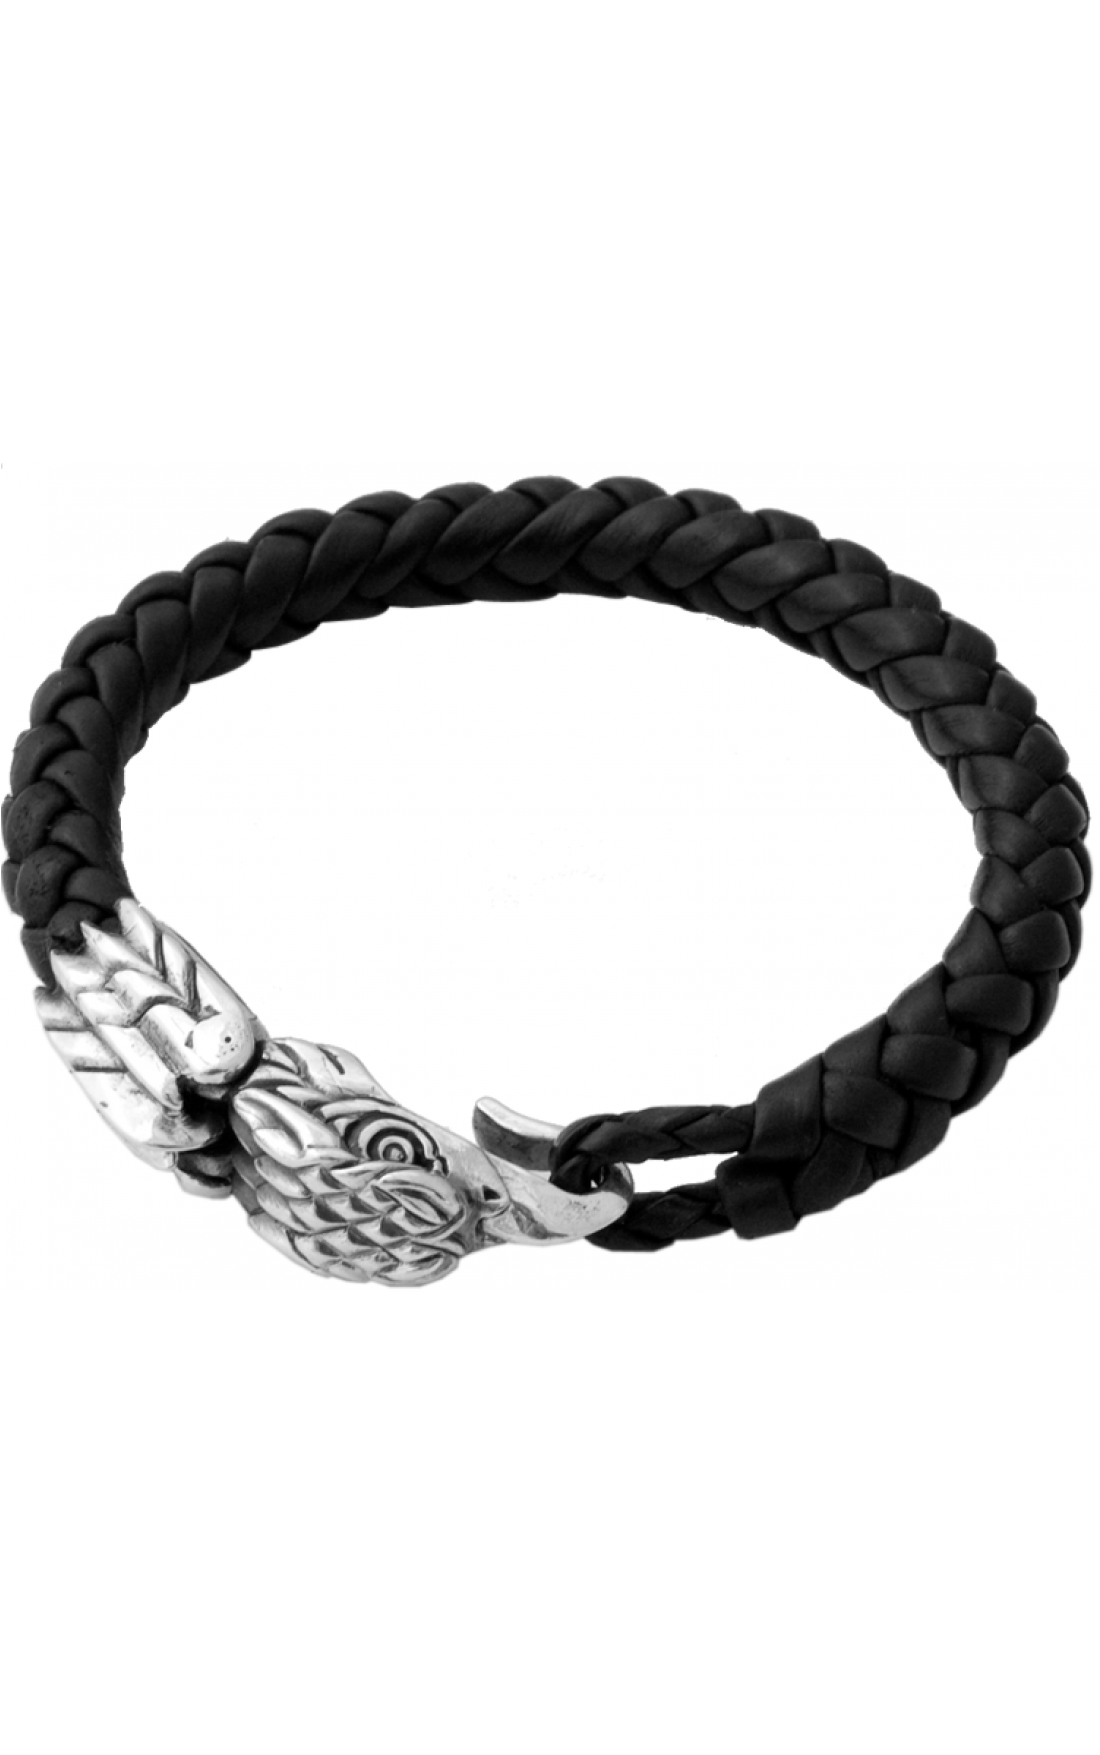 King-Baby-Jewellery-K40-8086-Leather-Silver-Eagle-Clasp-Boudi-UK